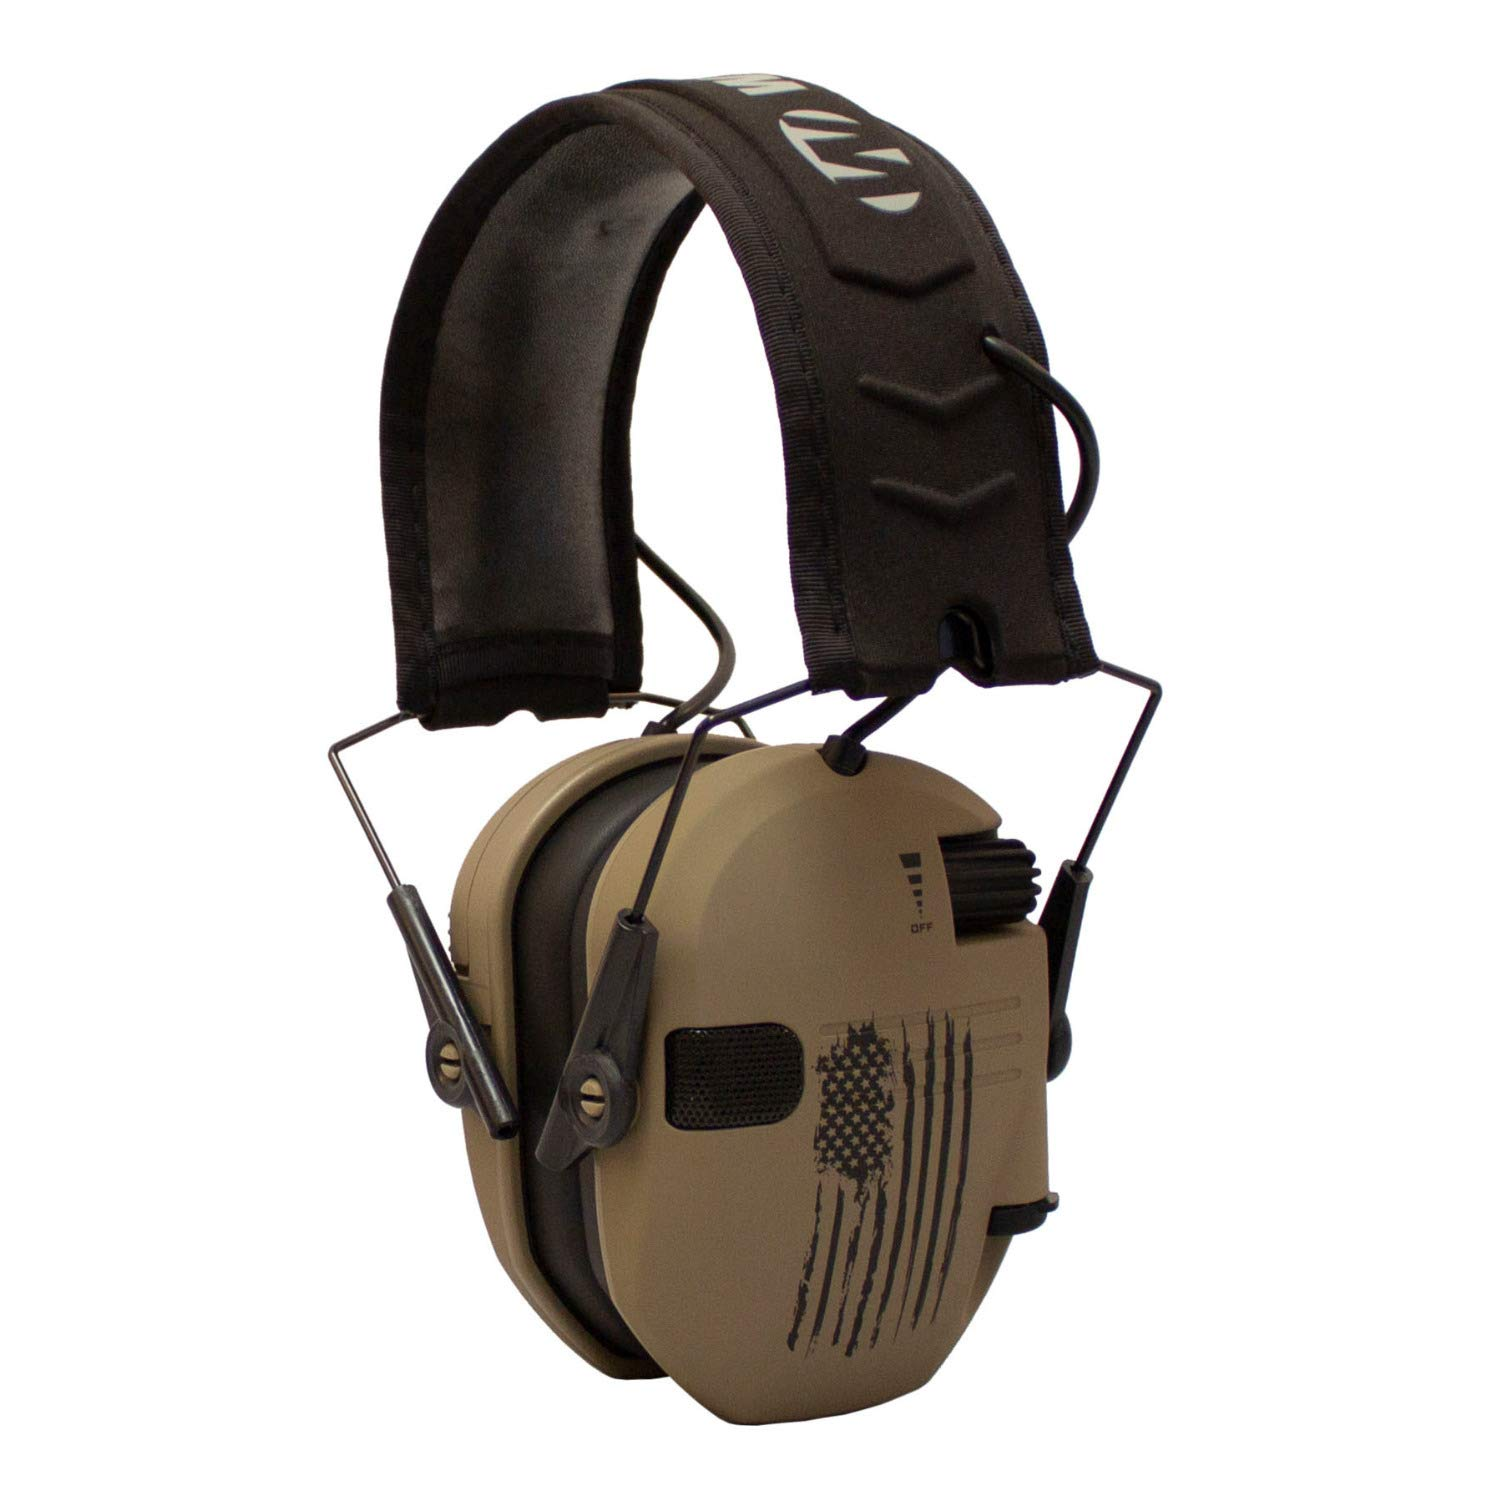 Walker's Razor Slim Electronic Shooting Hearing Protection Muff (American Flag Distressed, Tan) by Walker's Game Ear